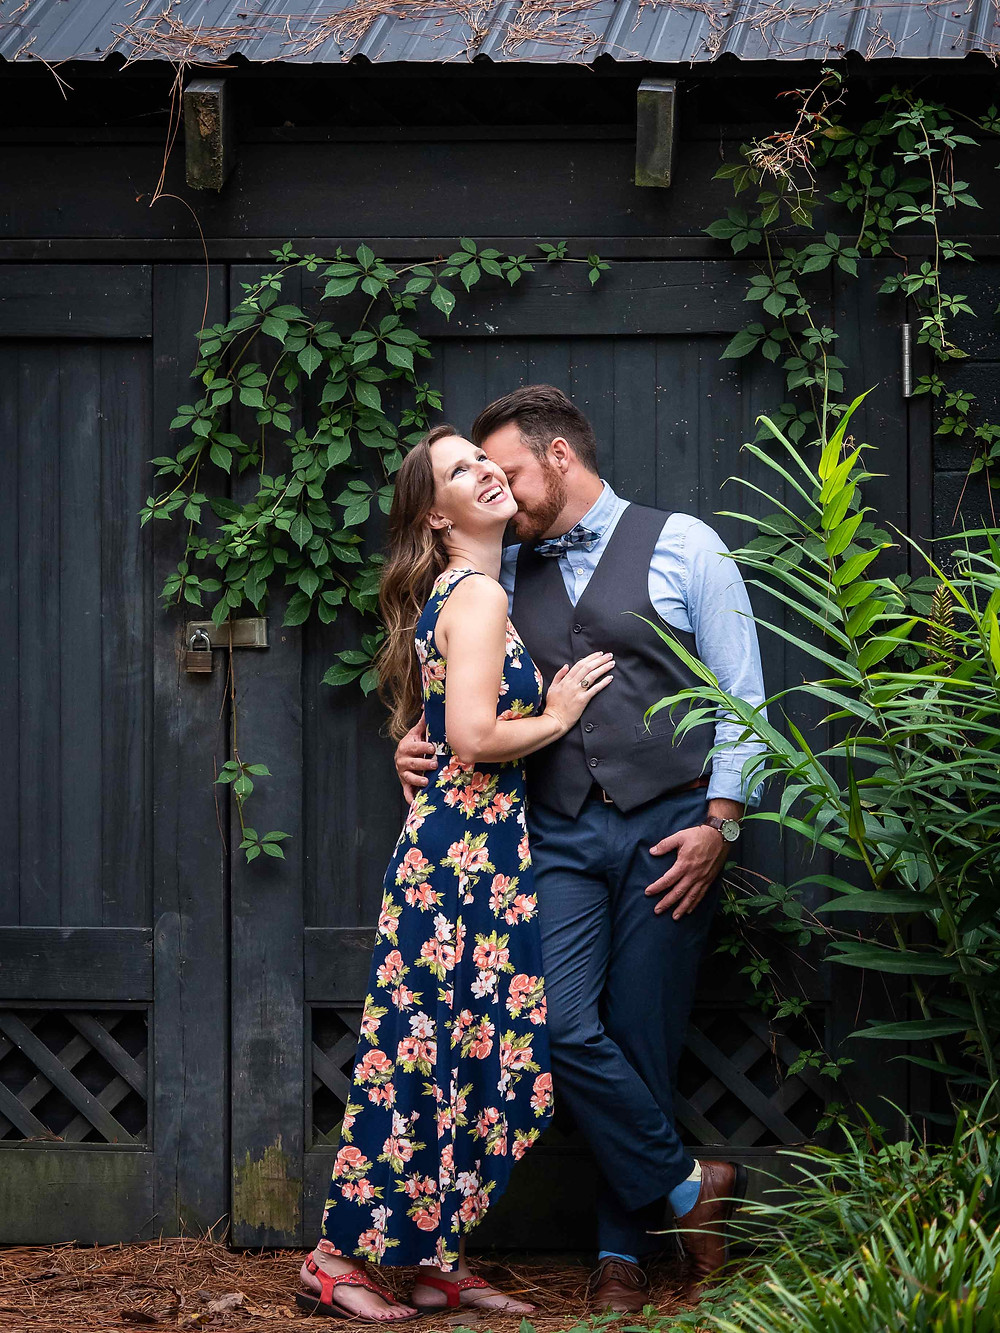 Engagement Photo in front of unique shed at Glencairn Garden by Sharon Elisabeth Photography